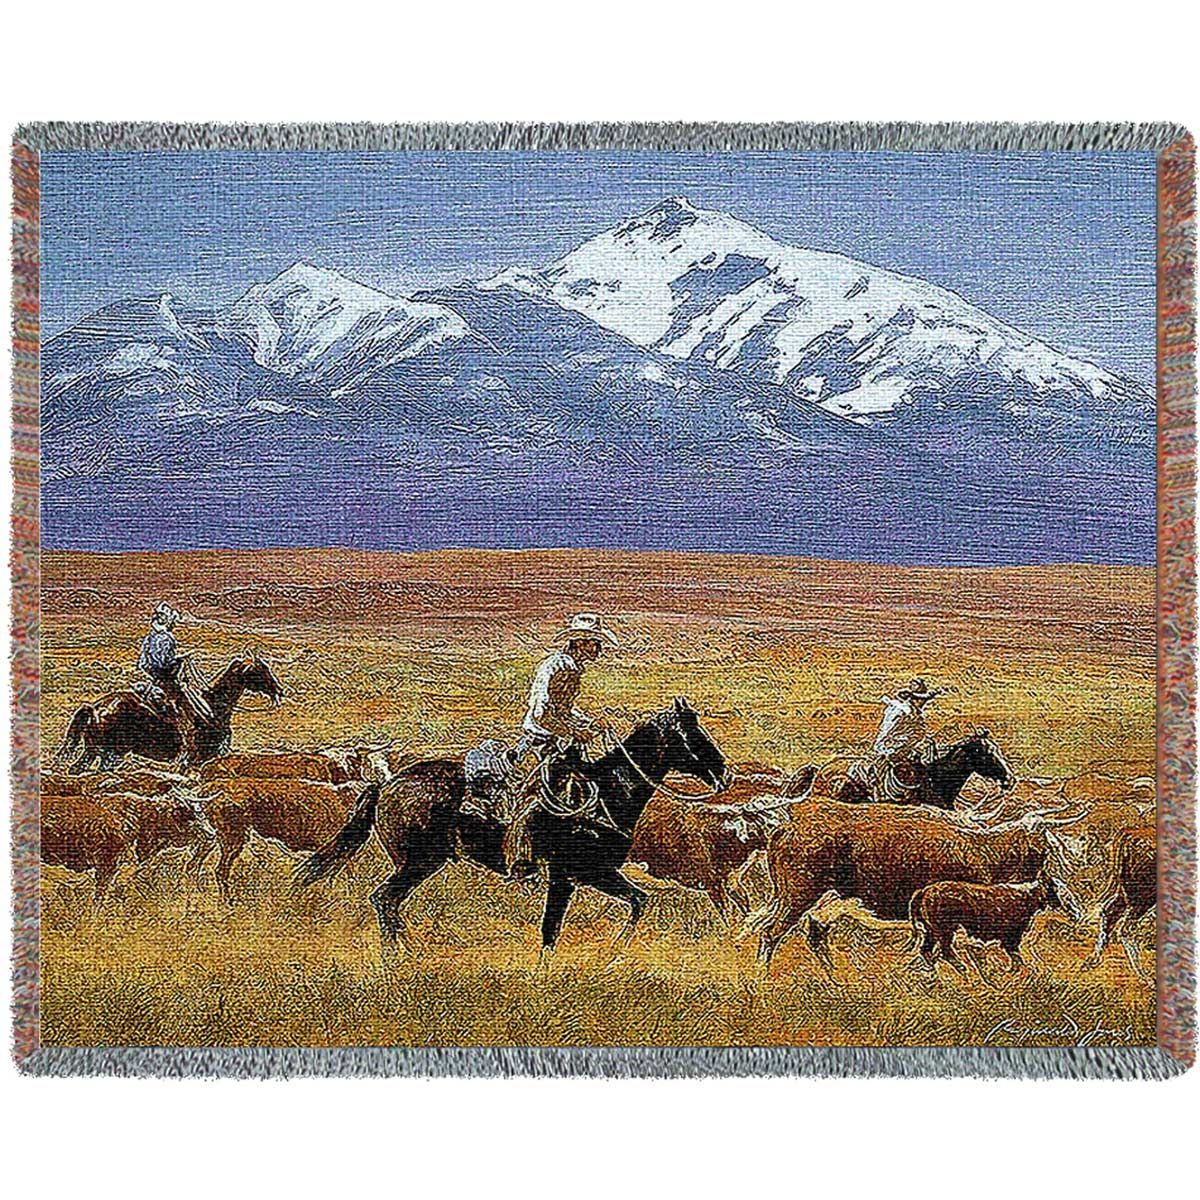 Homeward Bound Blanket